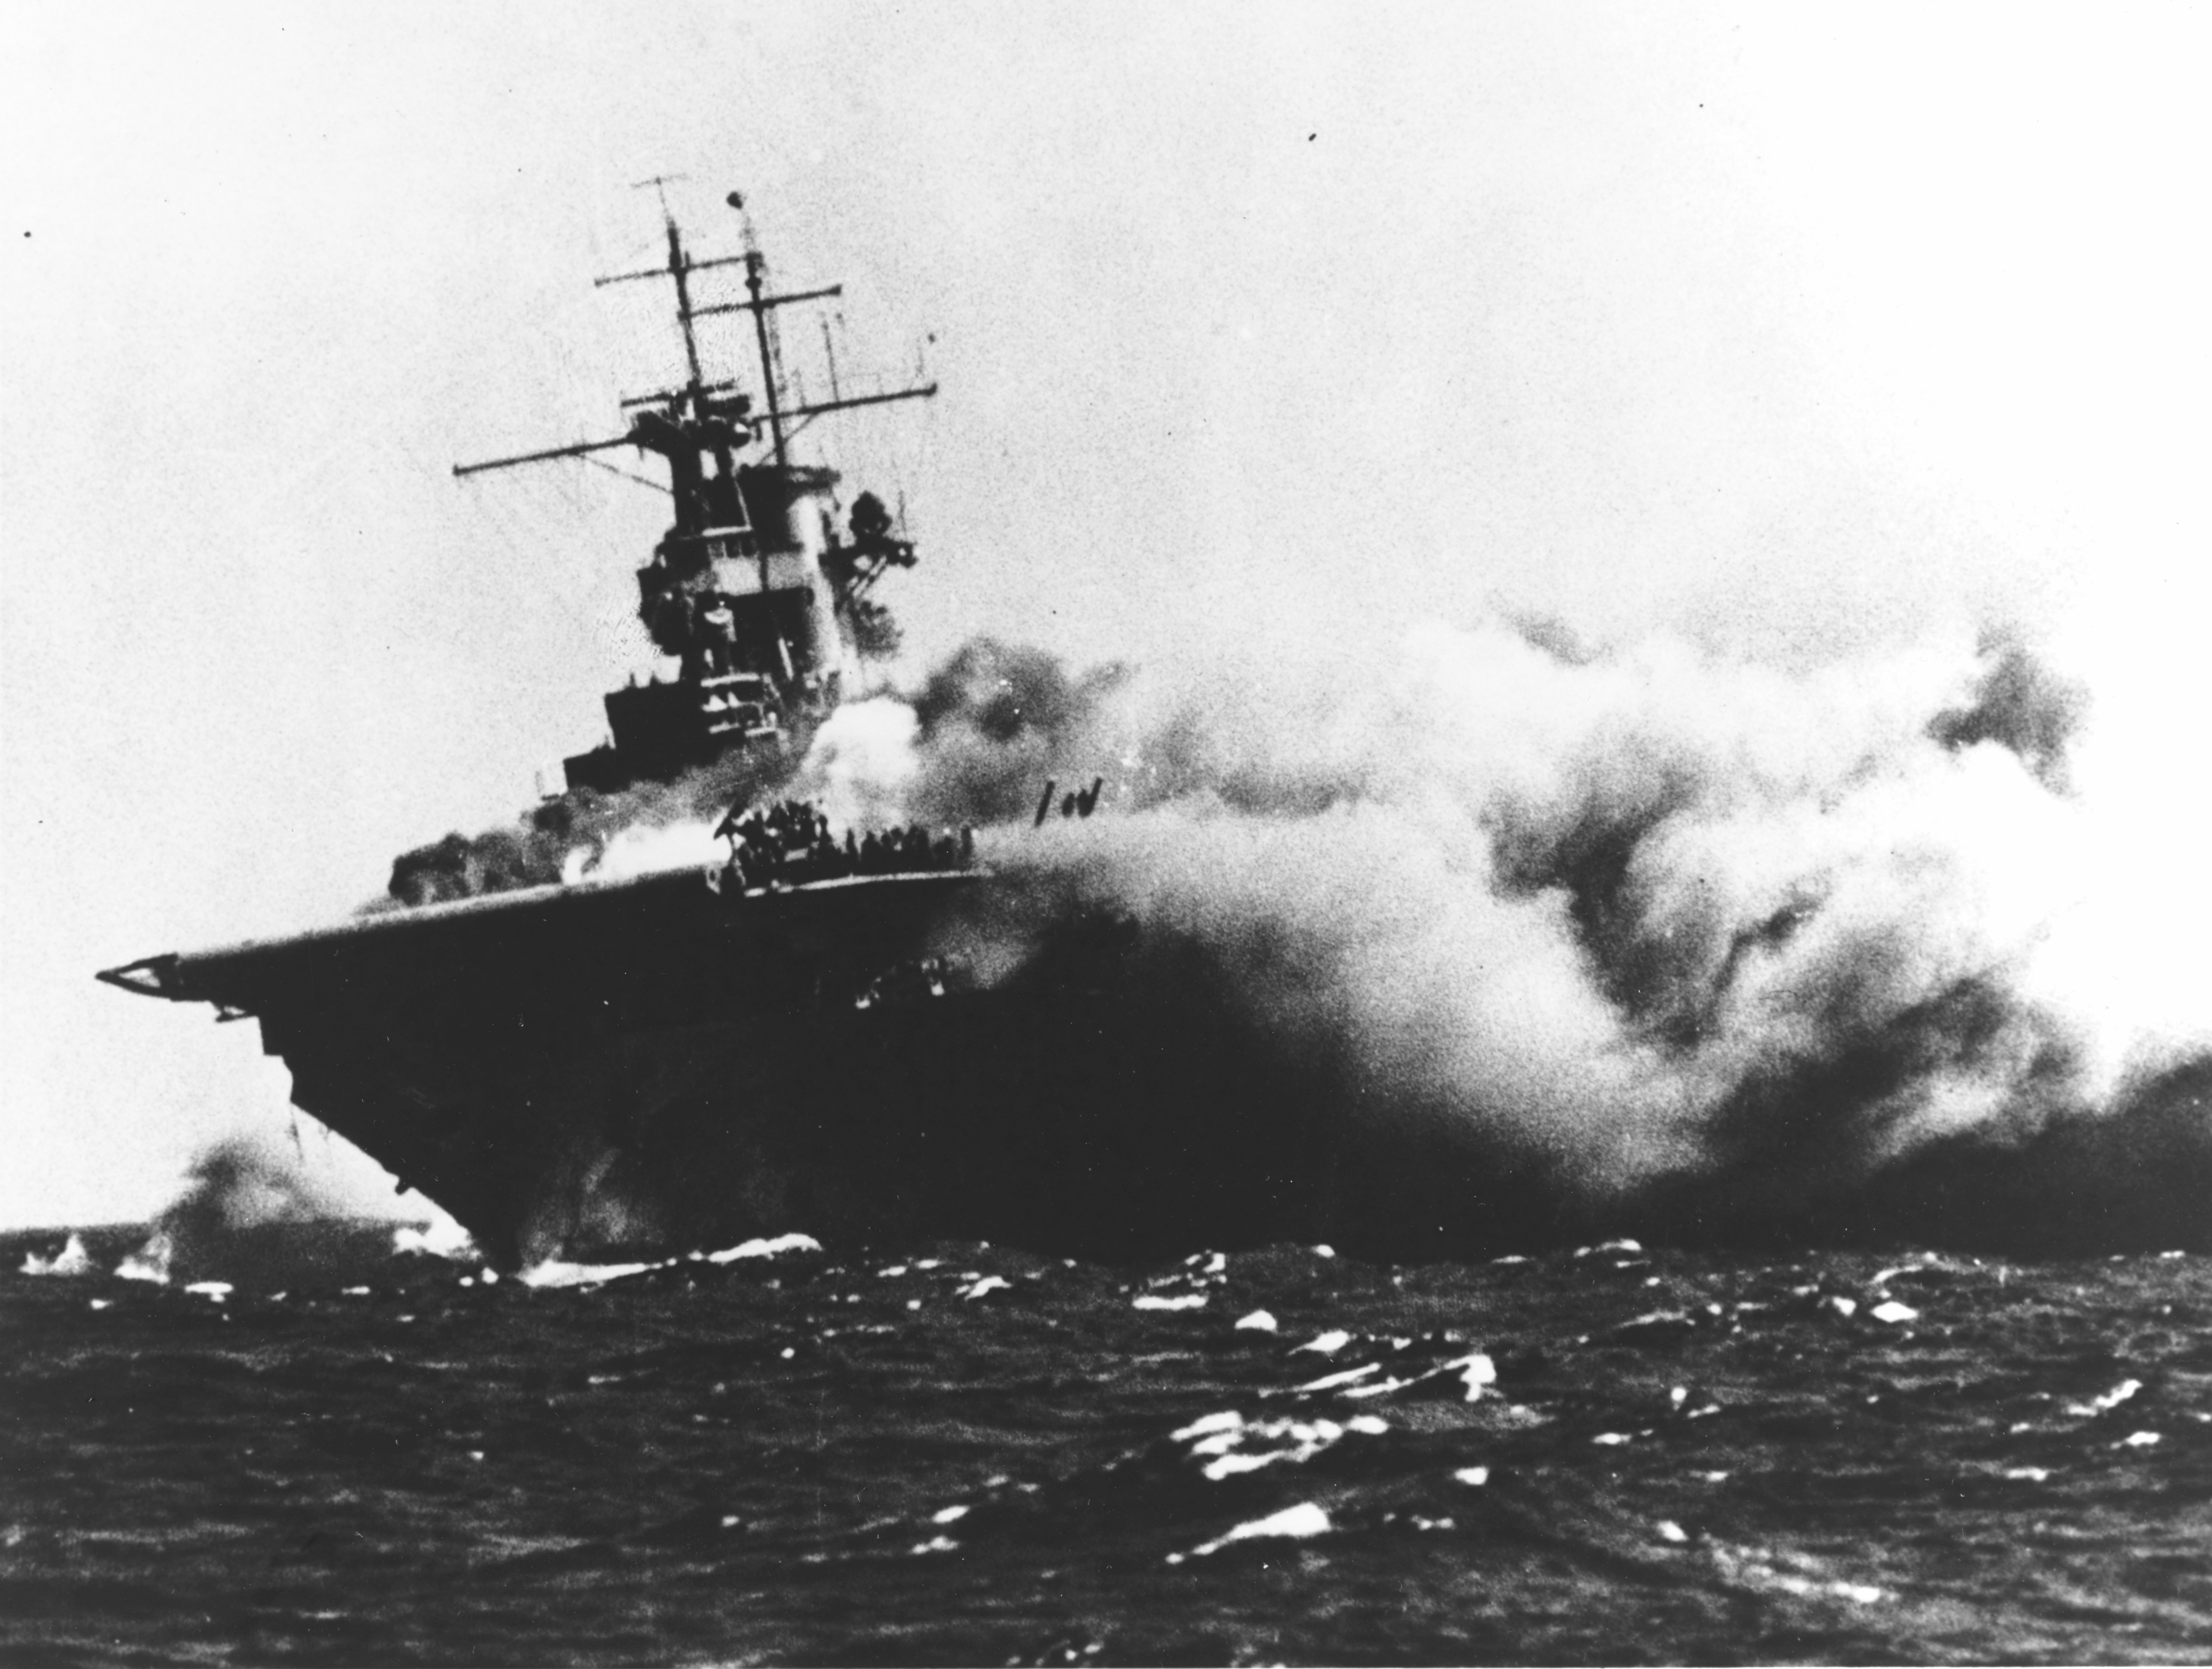 The U.S. Navy aircraft carrier USS Wasp (CV-7) burning and listing after she was torpedoed by the Japanese submarine I-19, on September 15, 1942, while operating in the Southwestern Pacific in support of forces on Guadalcanal. Note that the wartime censor has removed the CXAM-1 radar antenna, only its lower frame is still visible. U.S. Navy photo 80-G-16331.